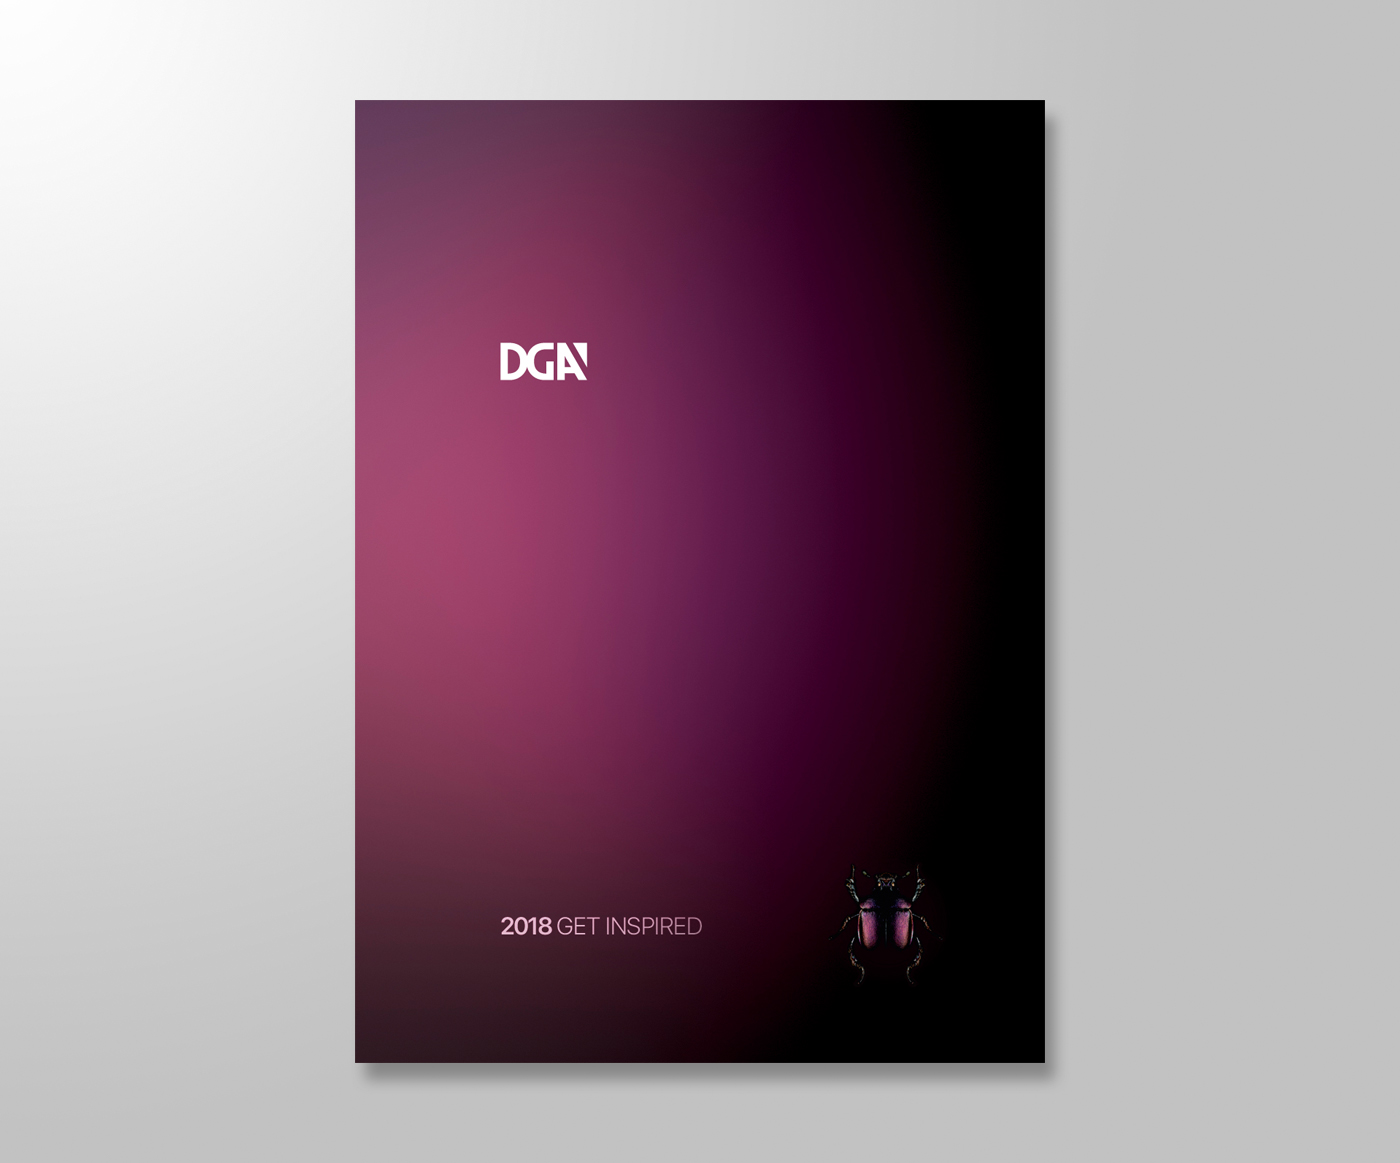 DGA - Get Inspired